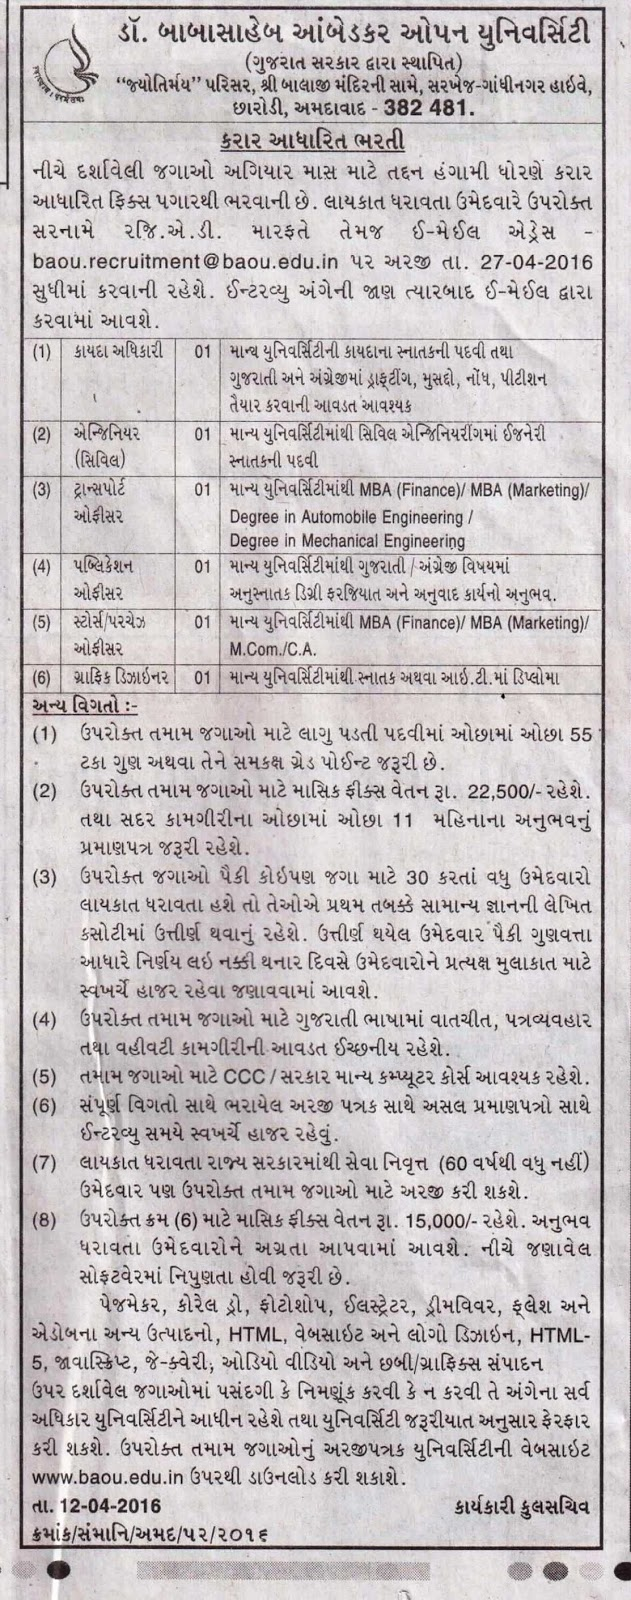 Dr Babasaheb Ambedkar Open University Baou Recruitment